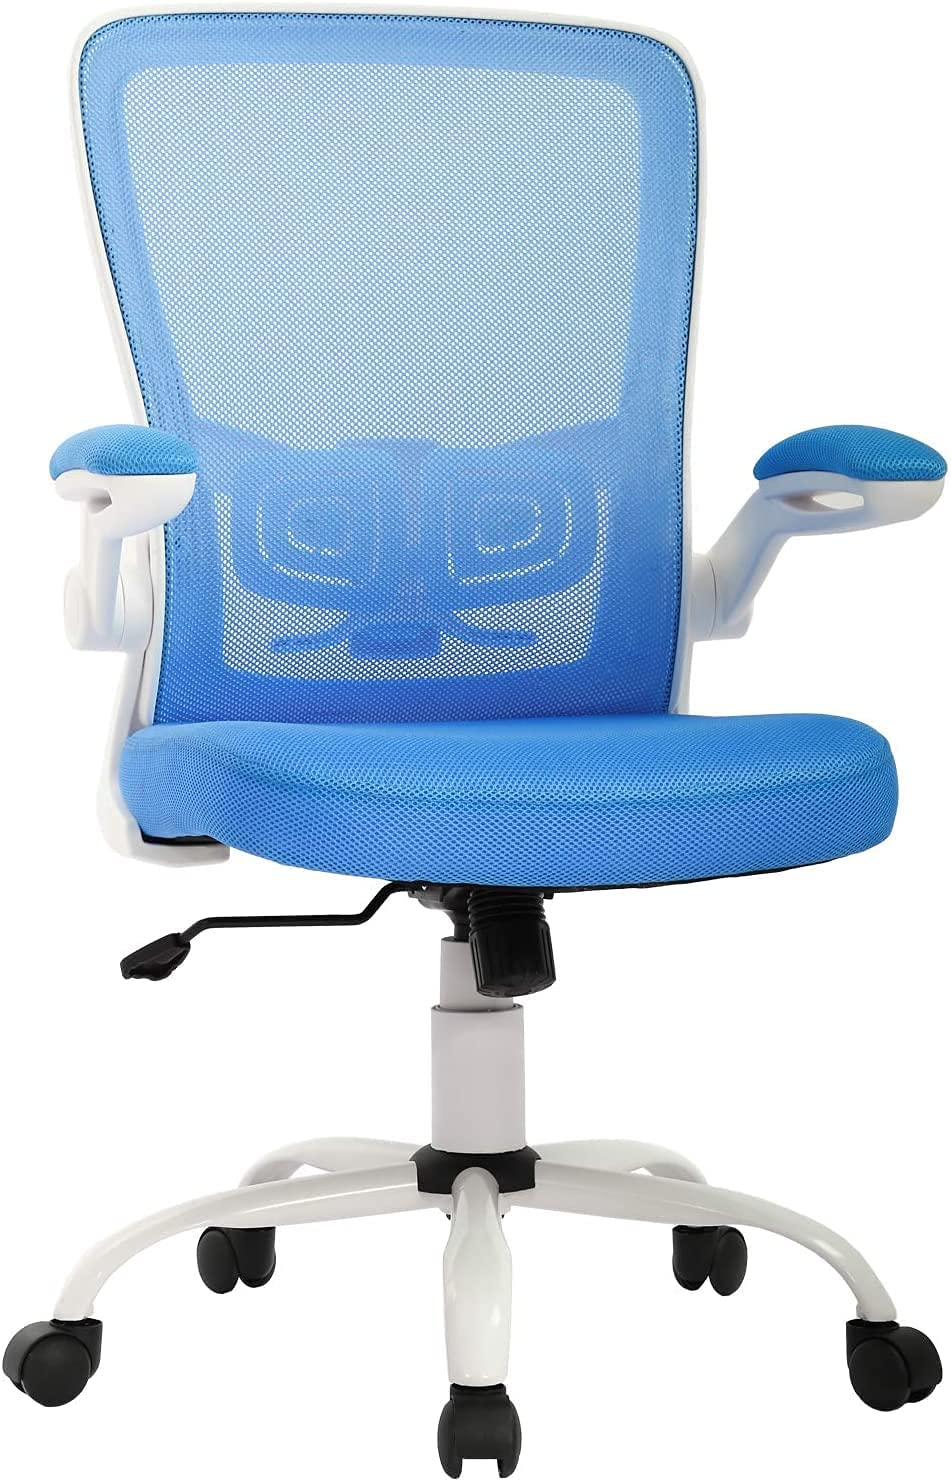 Simple It is very popular Office Chairs Home Challenge the lowest price of Japan ☆ Swivel Comfortable Chair Rolli